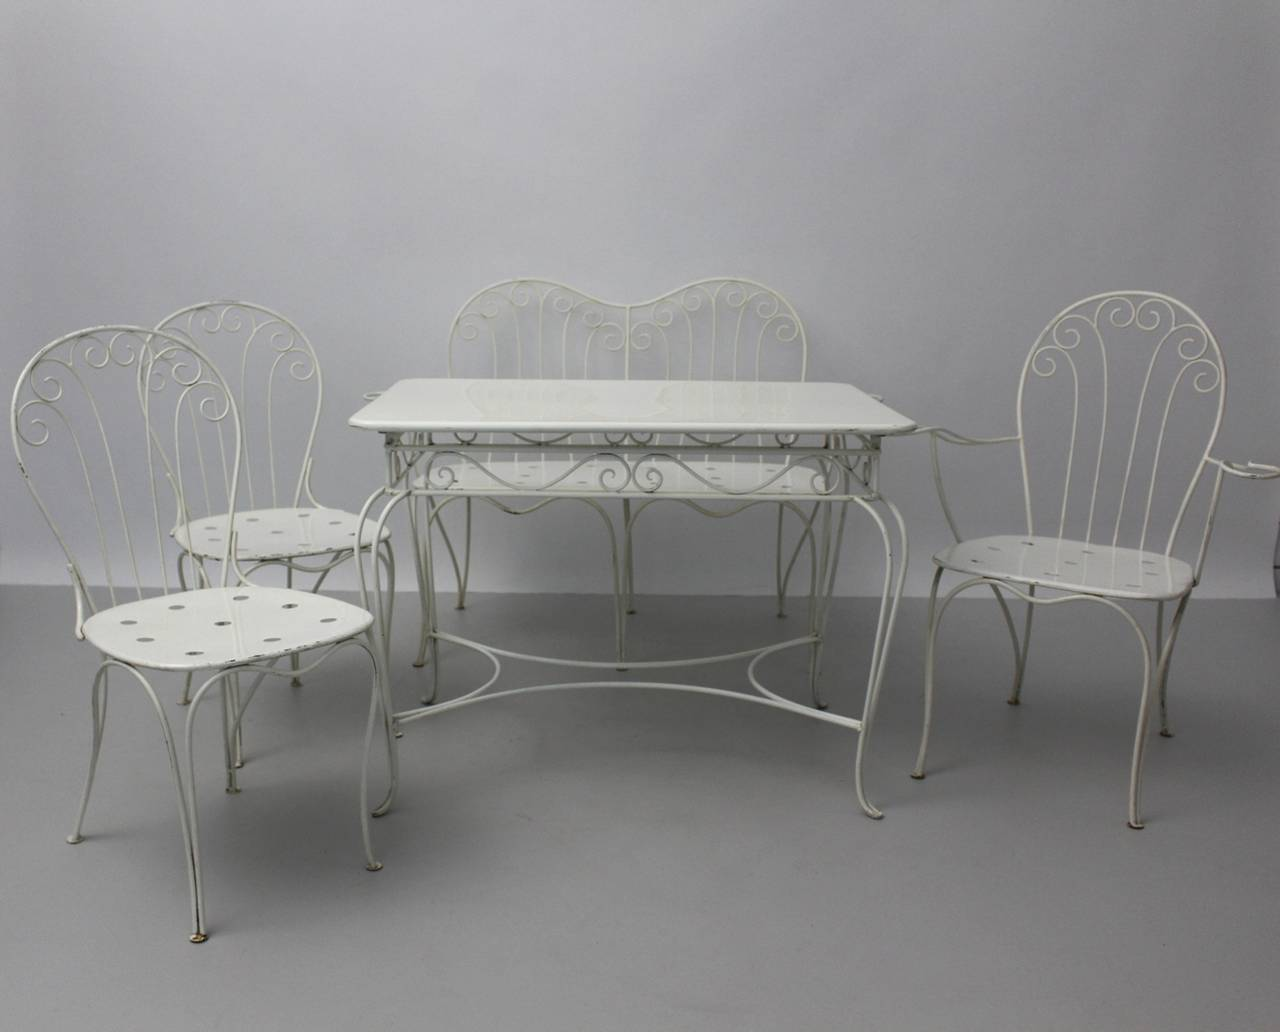 Austrian Mid Century White Metal Seating Group by Stanislaus Karasek and Co 1950s Austria For Sale